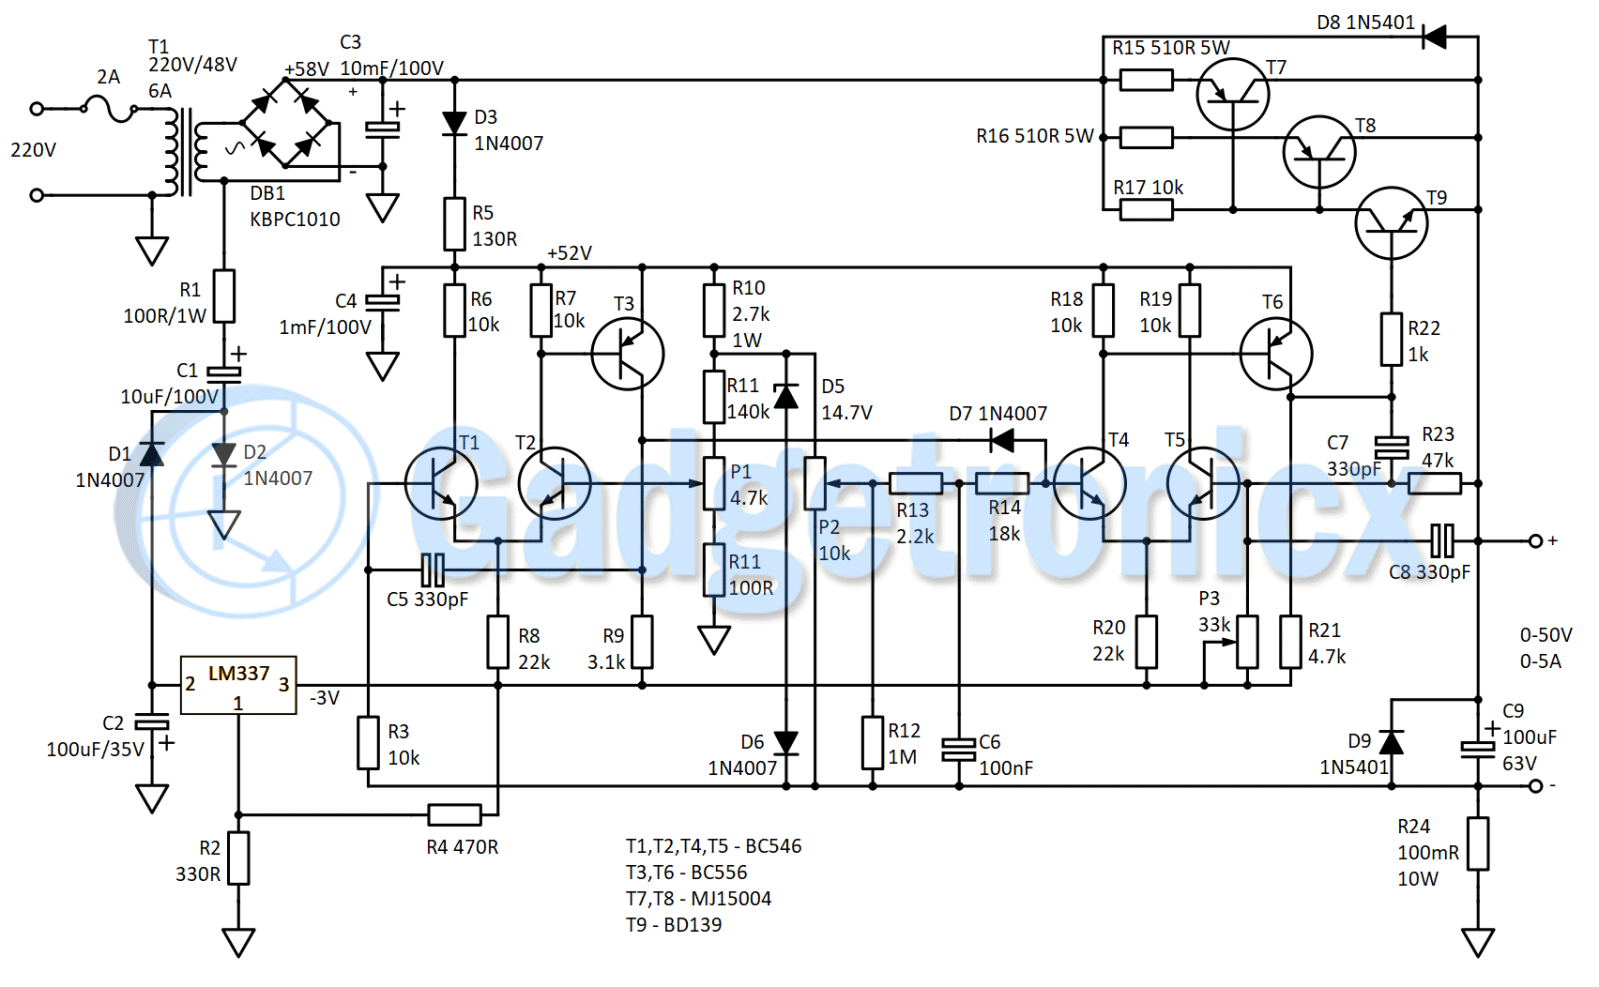 Bench Lab Power Supply 0 50v 5a Gadgetronicx Symmetrical Regulated Schematic Circuits Circuit Diagram Of